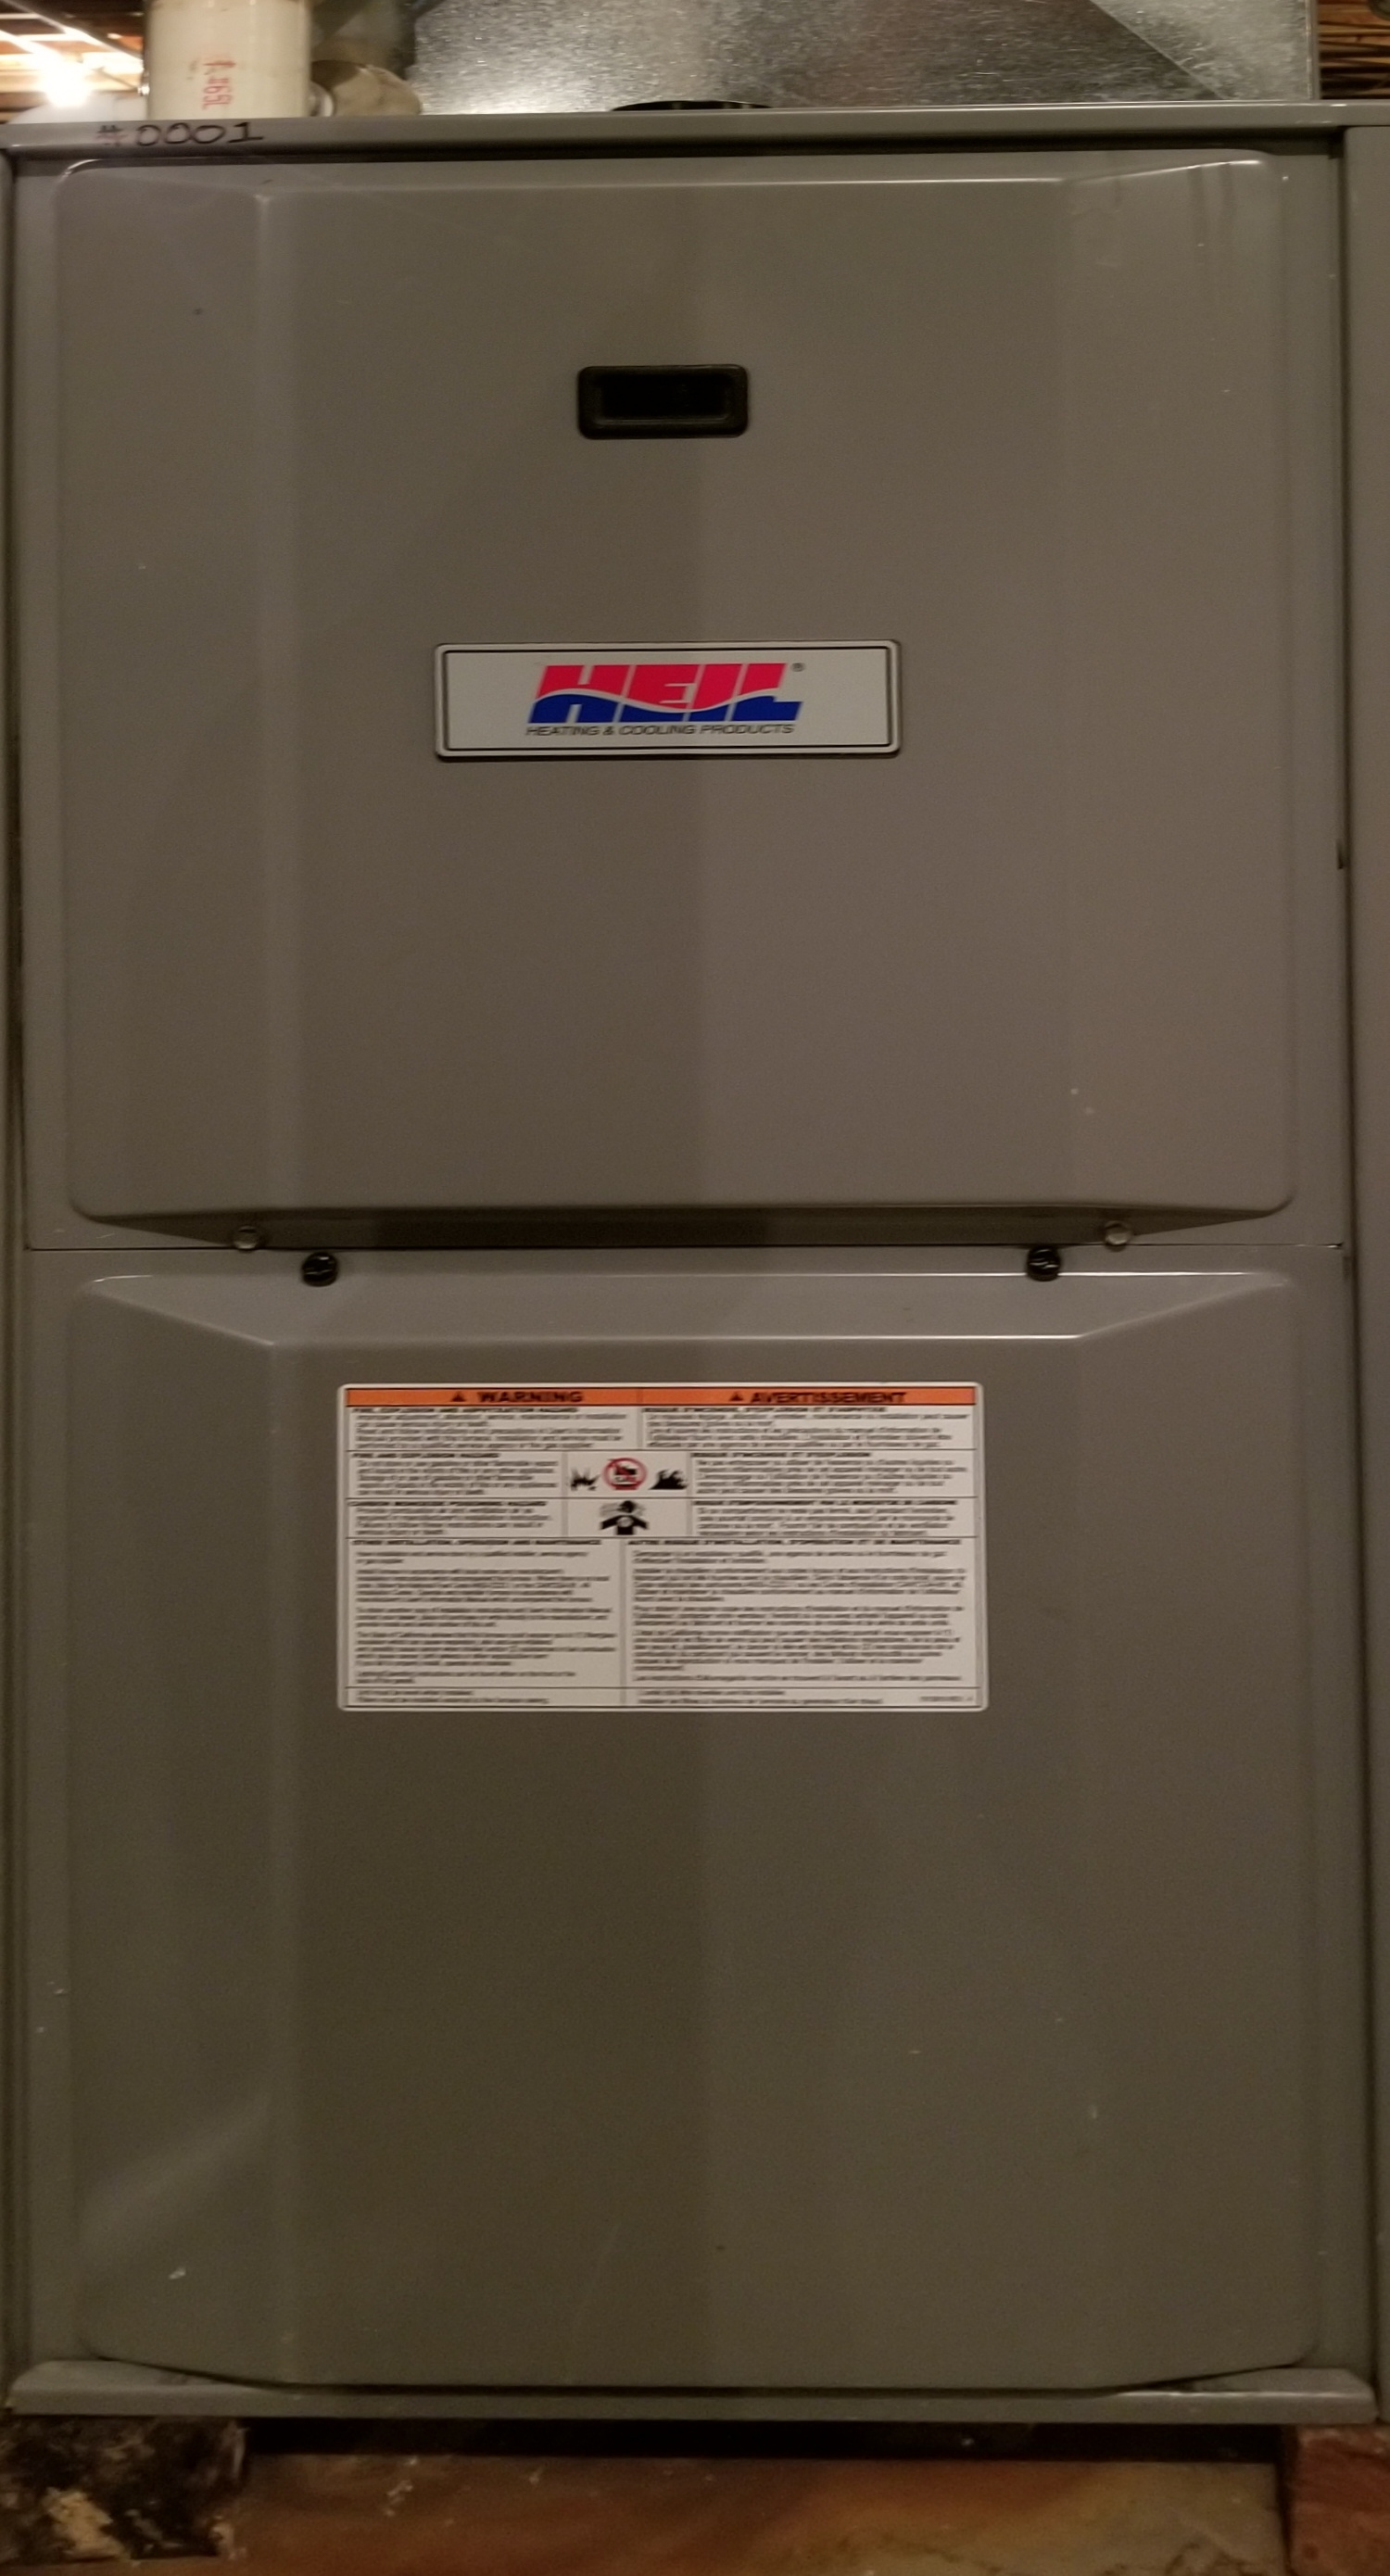 Repaired the Heil furnace and Aprilaire humidifier and made adjustments to improve the overall efficiency and life expectancy of the equipment